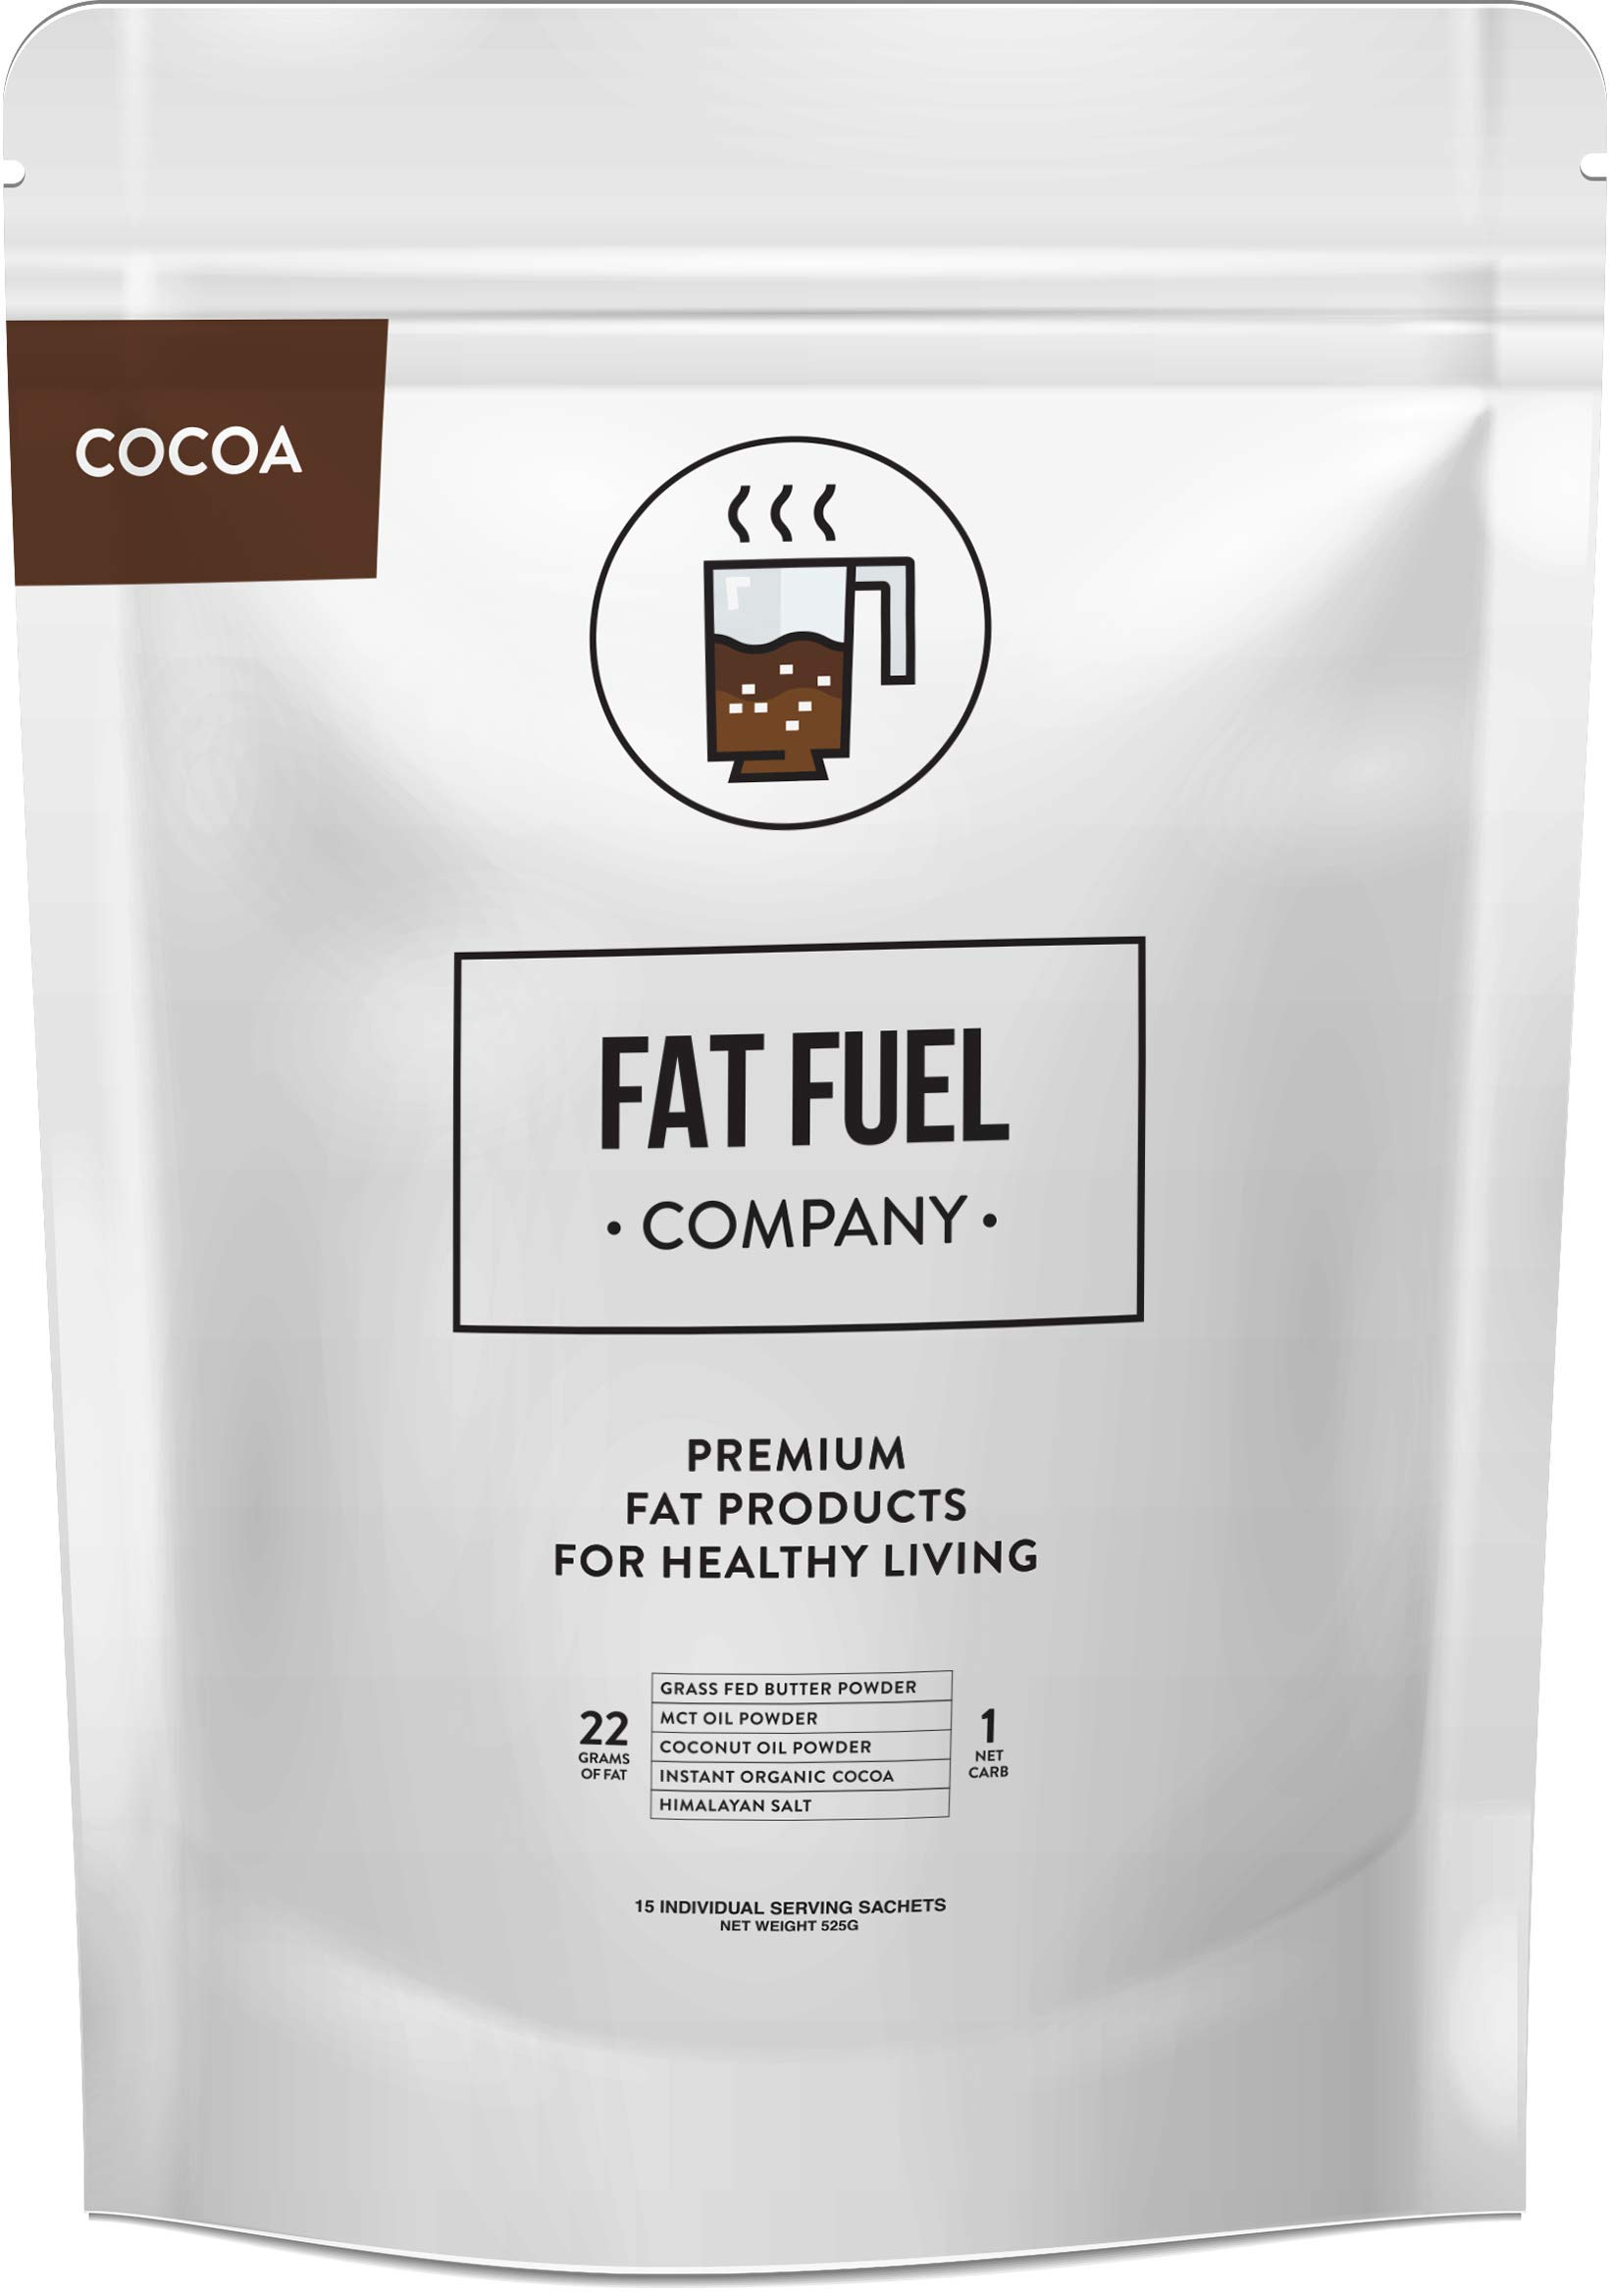 Fat Fuel Company Keto Cocoa Powder   Hot Chocolate Drink Mix   Coconut & MCT Oil, Grass Fed Butter, Himalayan Salt   Perfect For Low-Carb & Paleo Diet   Organic Ingredients   15 Packets